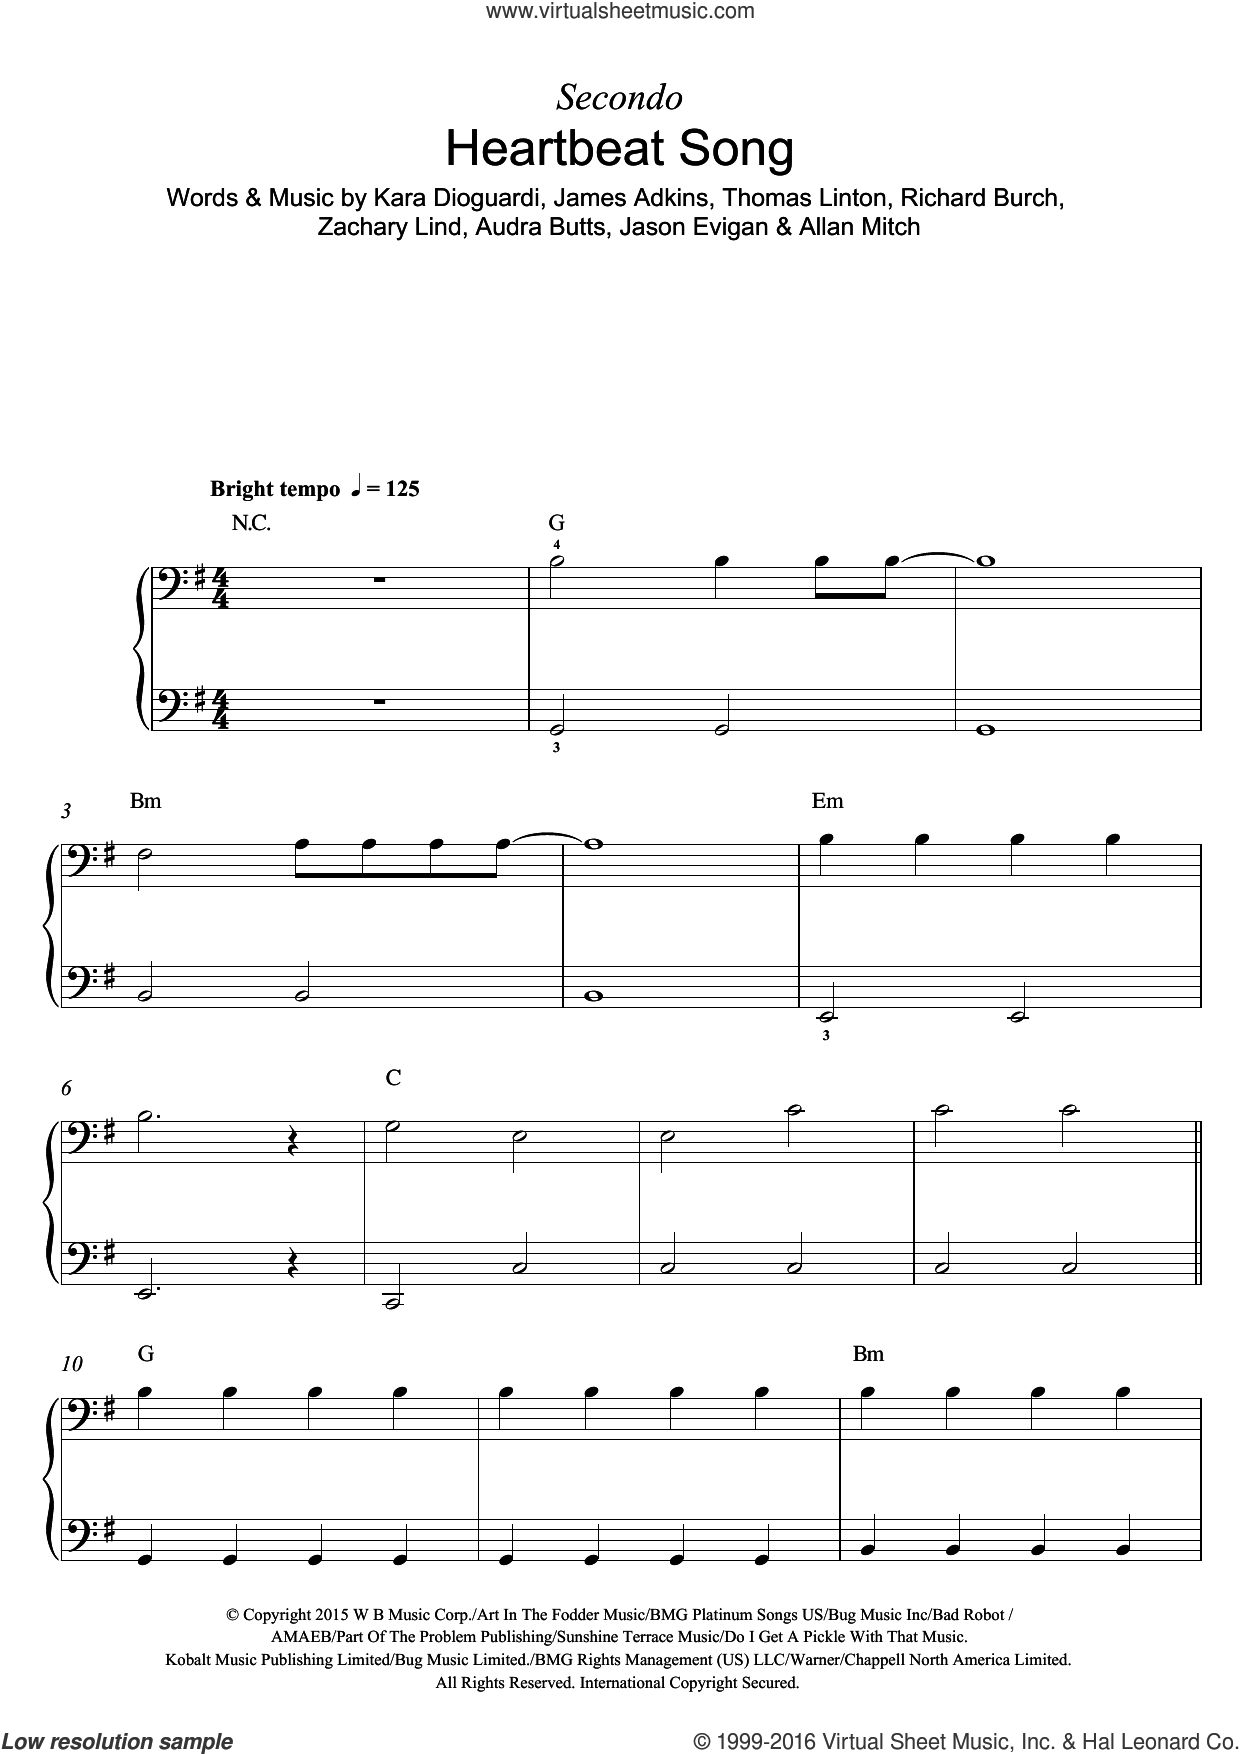 Heartbeat Song sheet music for piano solo by Zachary Lind, Kelly Clarkson, Audra Butts, James Adkins, Jason Evigan, Kara DioGuardi, Richard Burch and Thomas Linton. Score Image Preview.